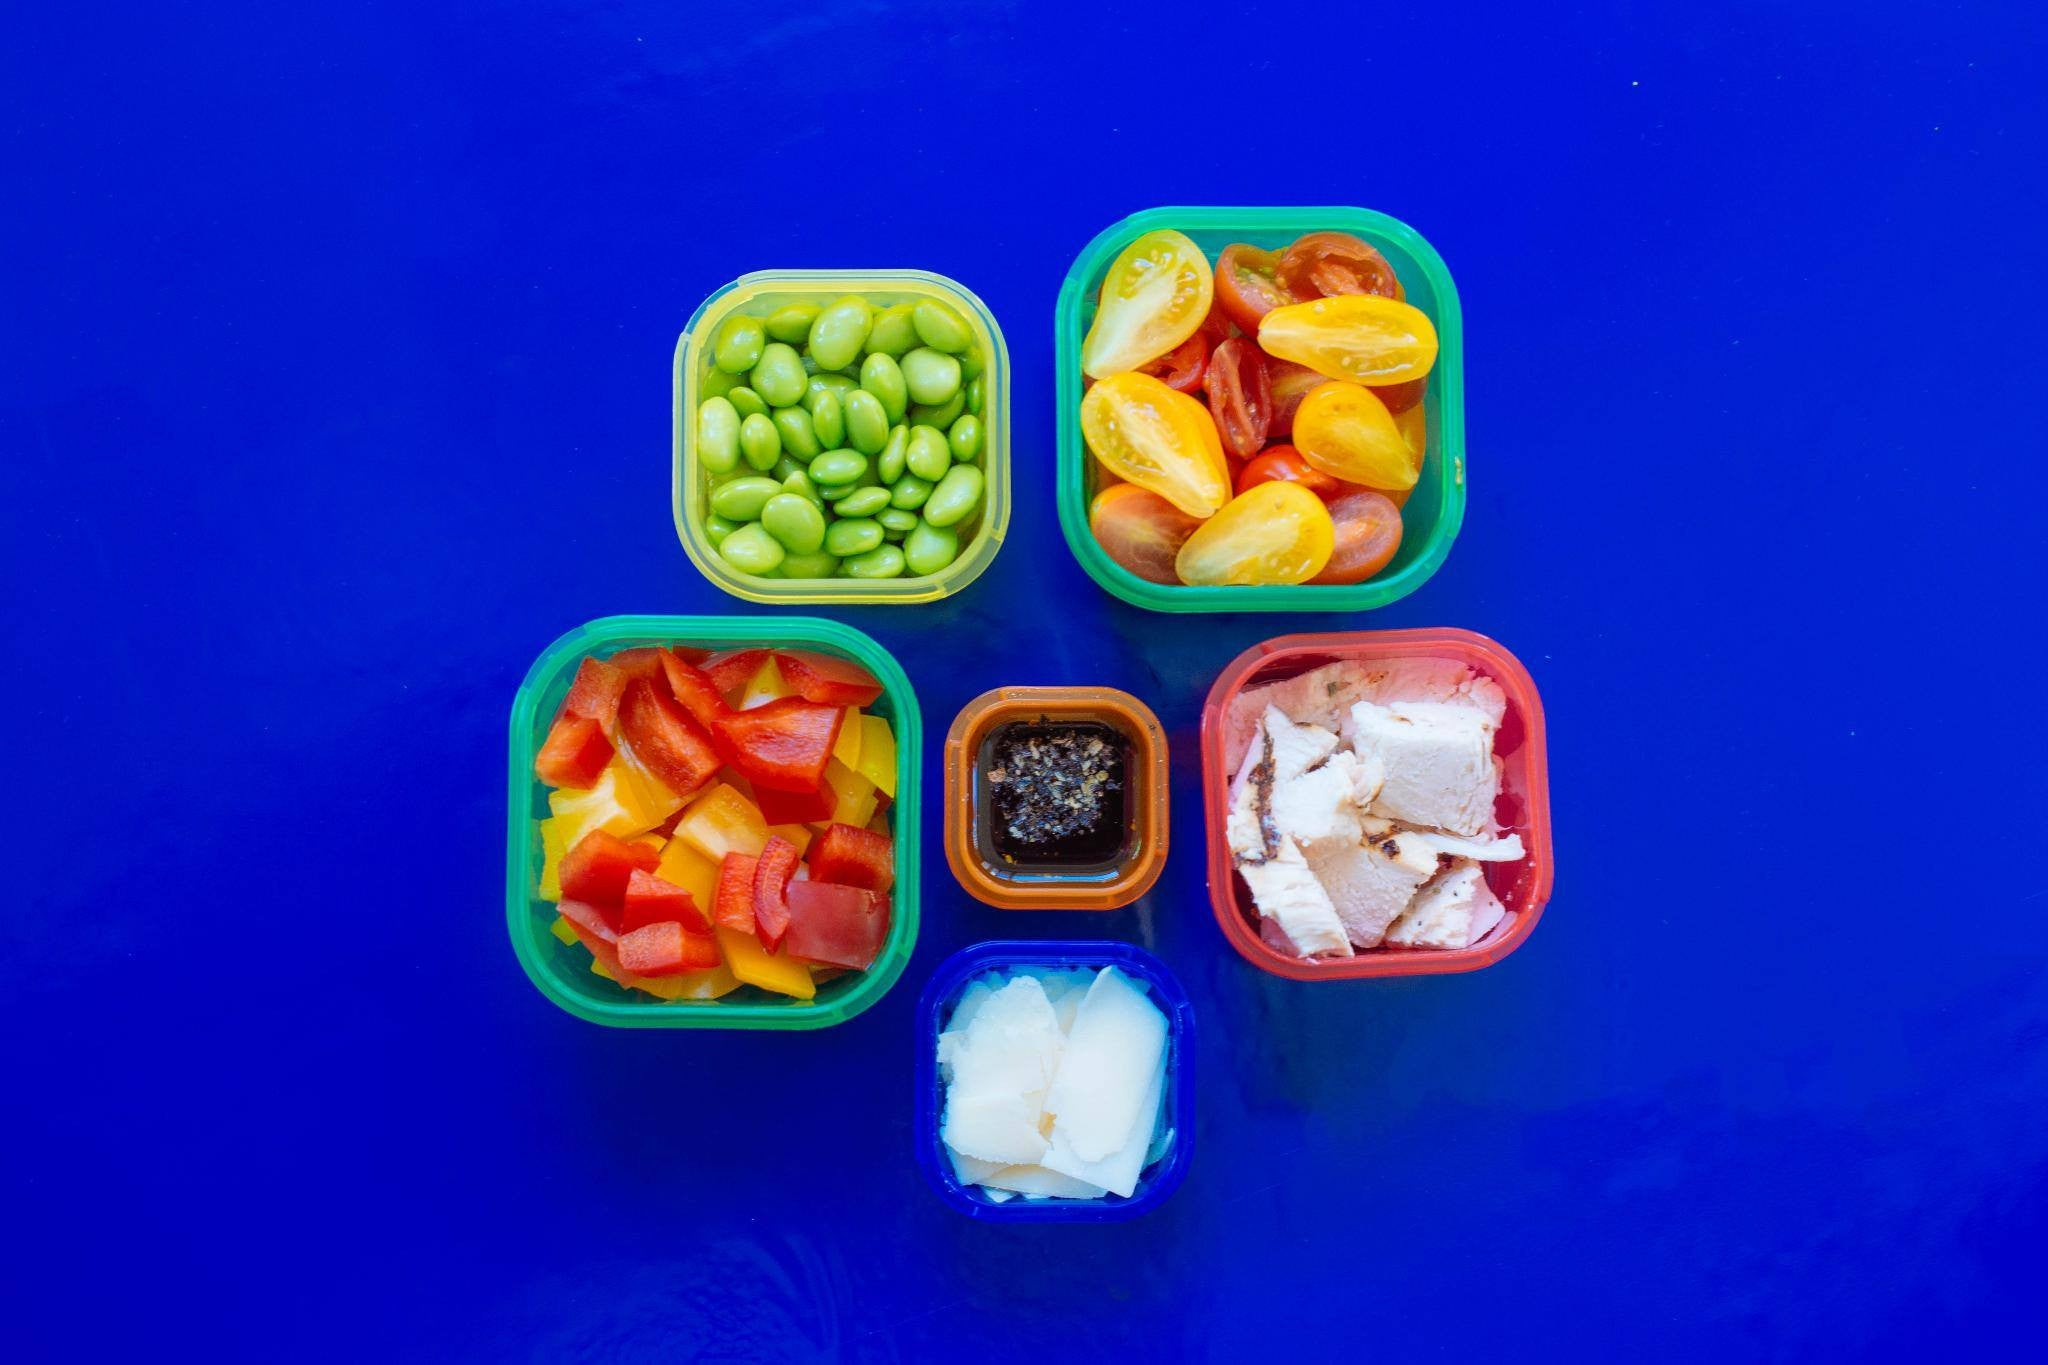 BEACHBODY Portion Control 7 Piece Container Kit - BPA FREE